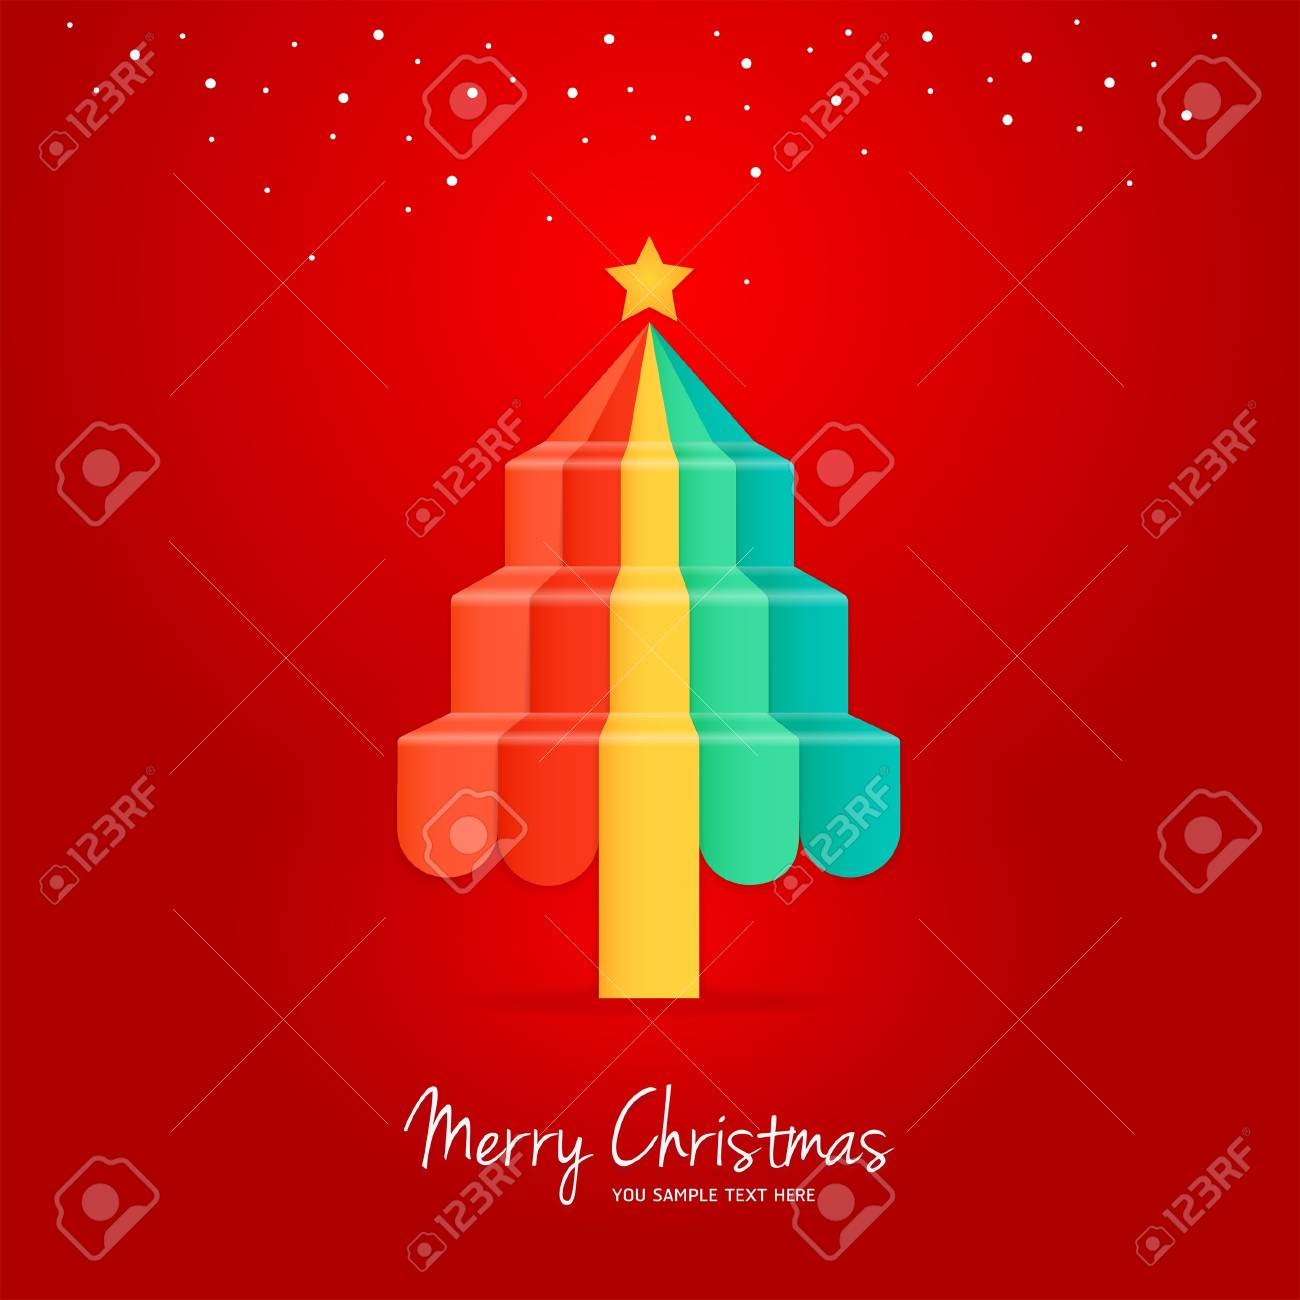 Christmas Greeting Card Stock Vector - 16272580